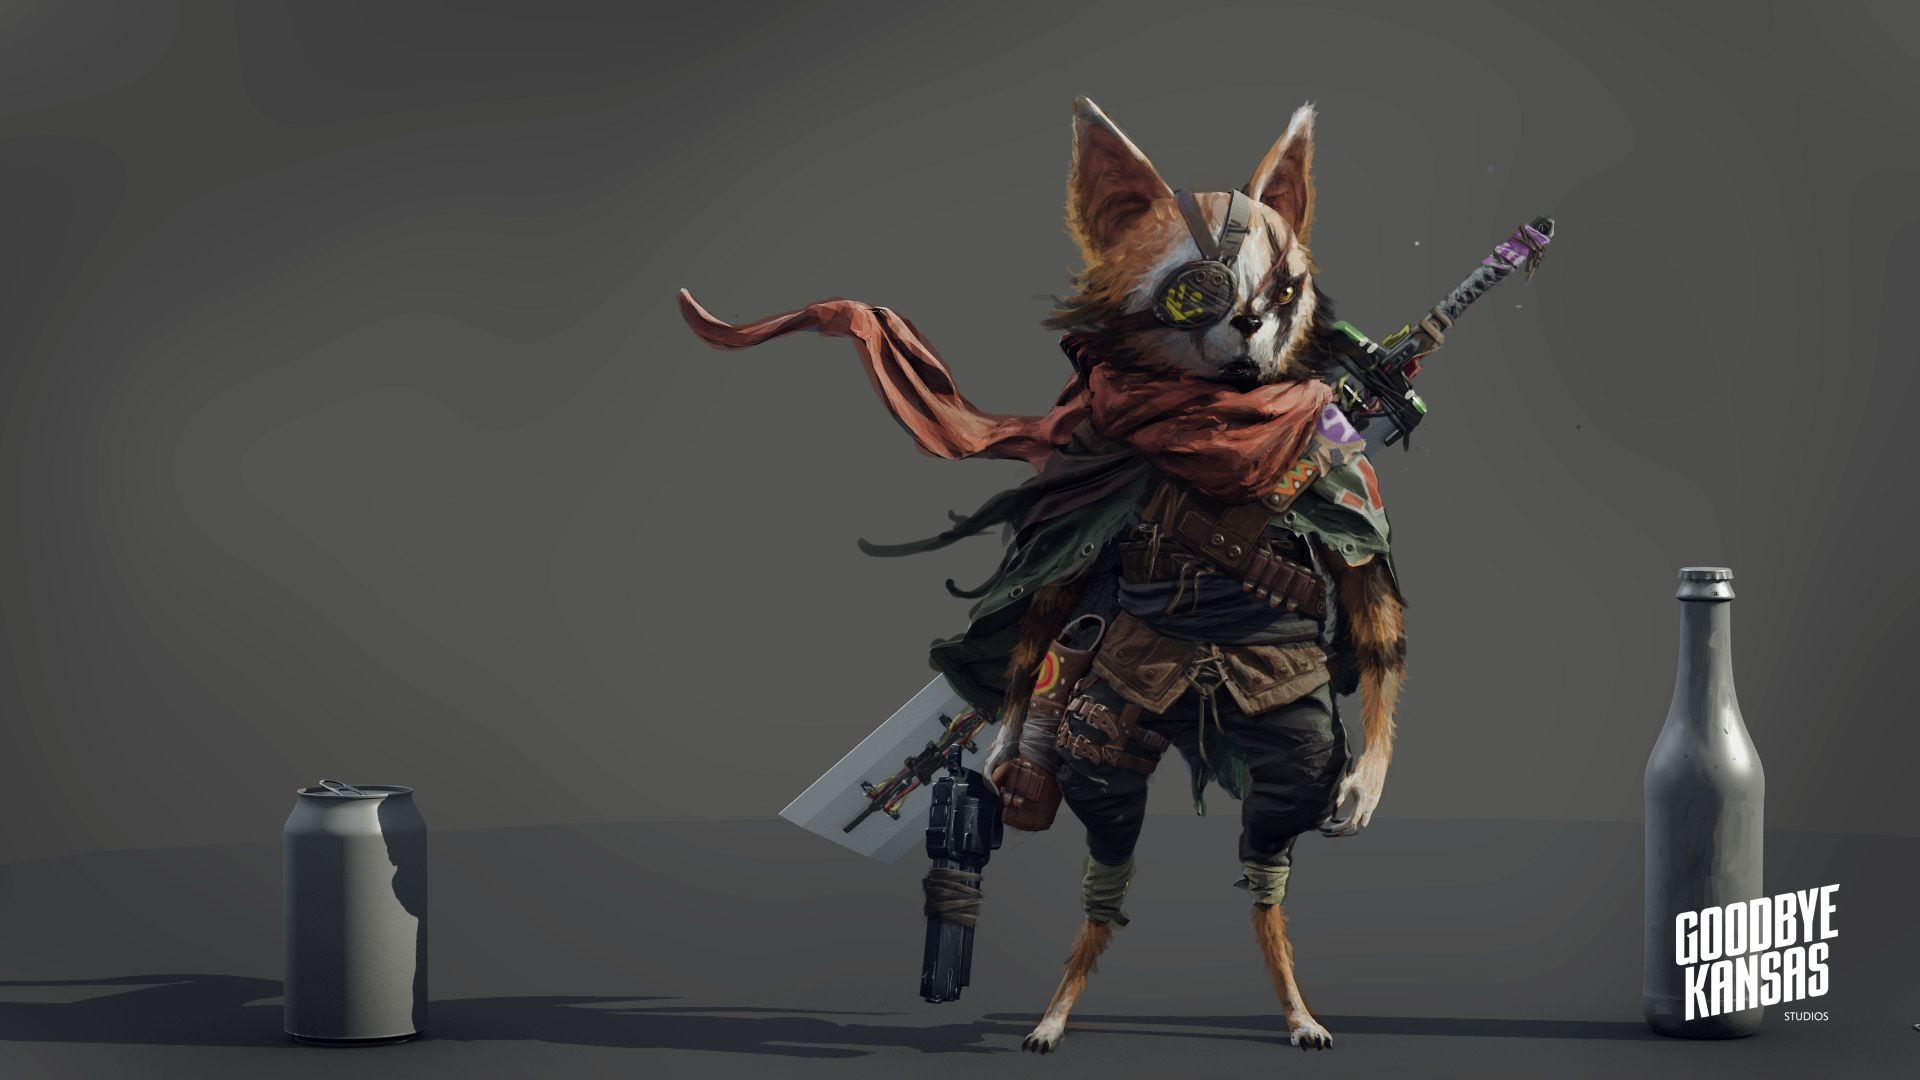 biomutant 2018 images biomutant character concept art hd wallpaper and background photos. Black Bedroom Furniture Sets. Home Design Ideas